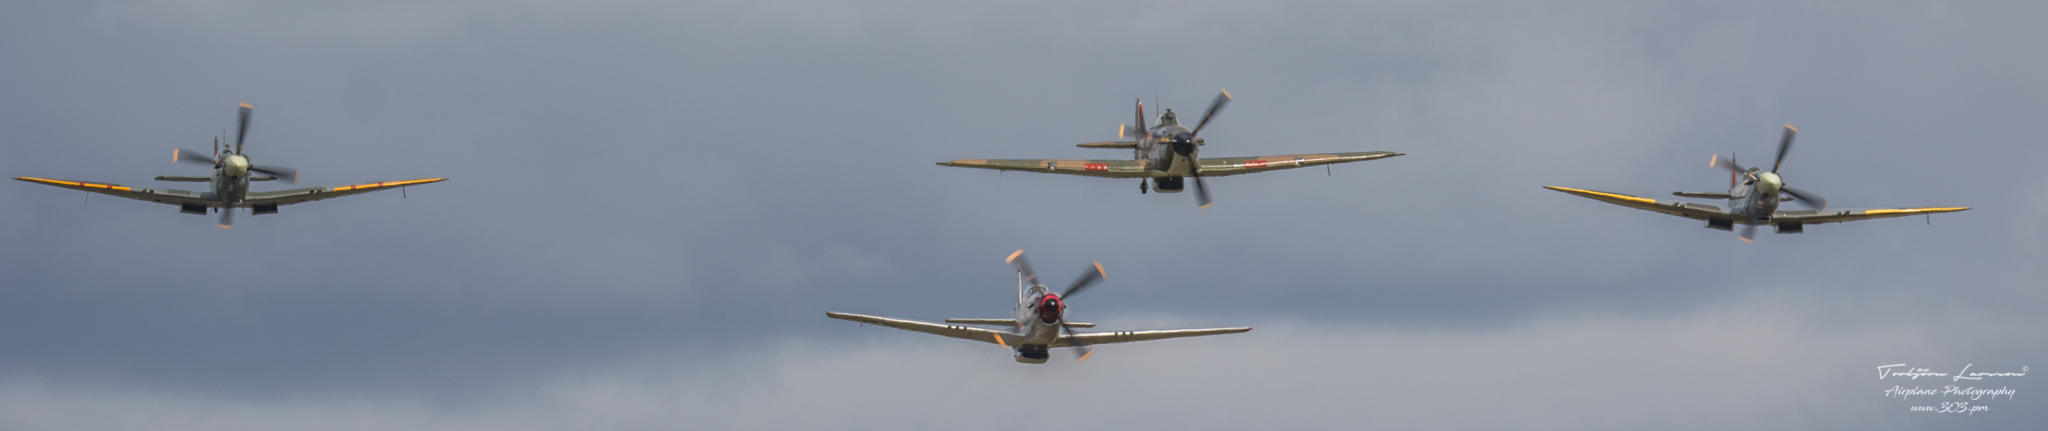 TBE_9653-Classic Warbirds (Vickers Supermarine Spitfire Mk. IX & XVI - North Amercian P-51D Mustang & Hawker Hurricane Mk1)